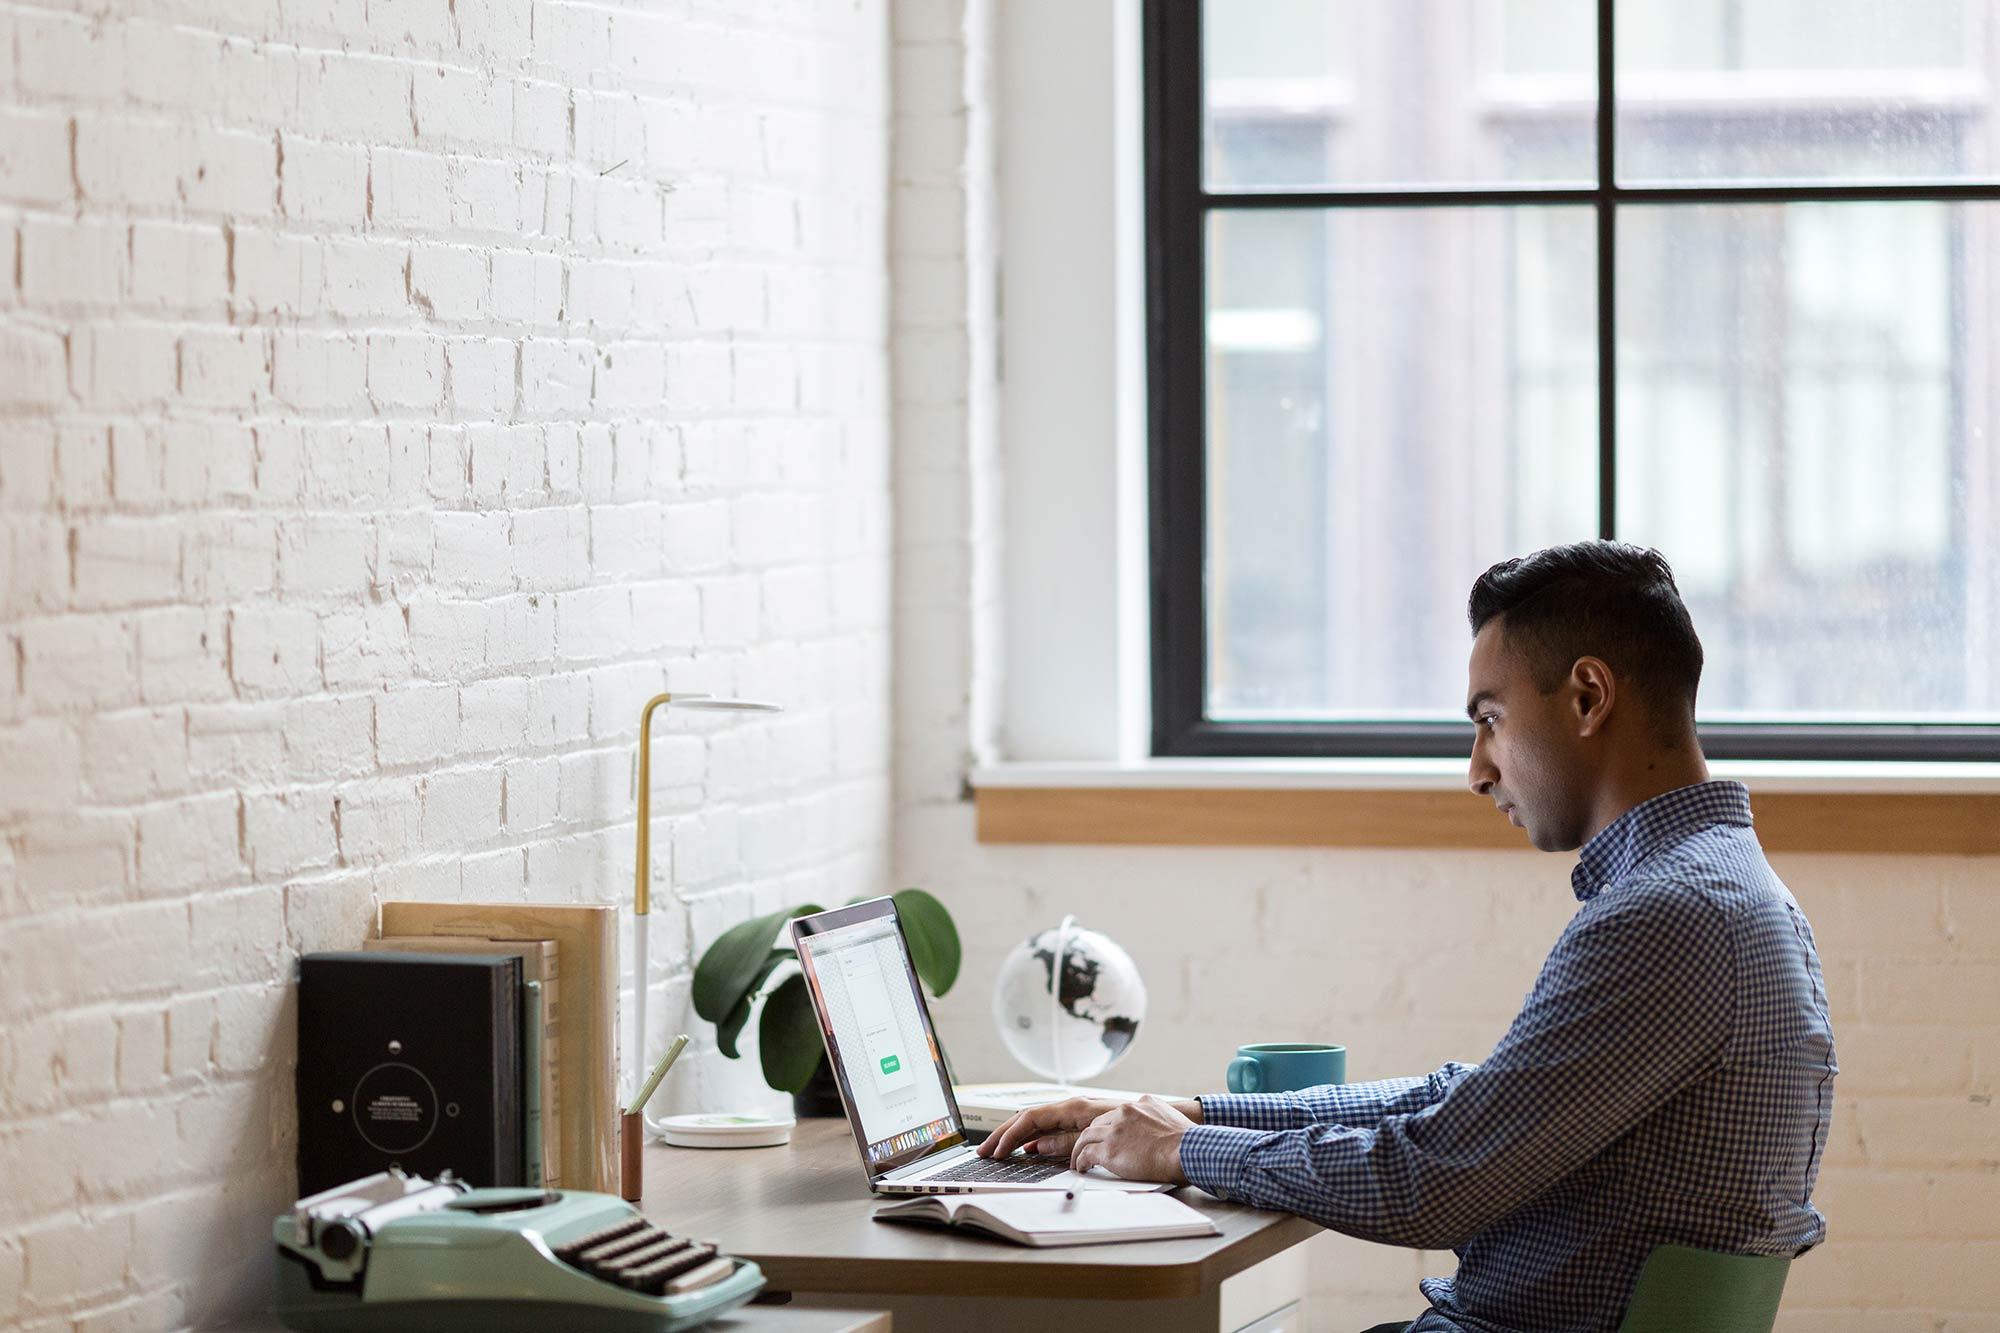 Man working at a desk and laptop